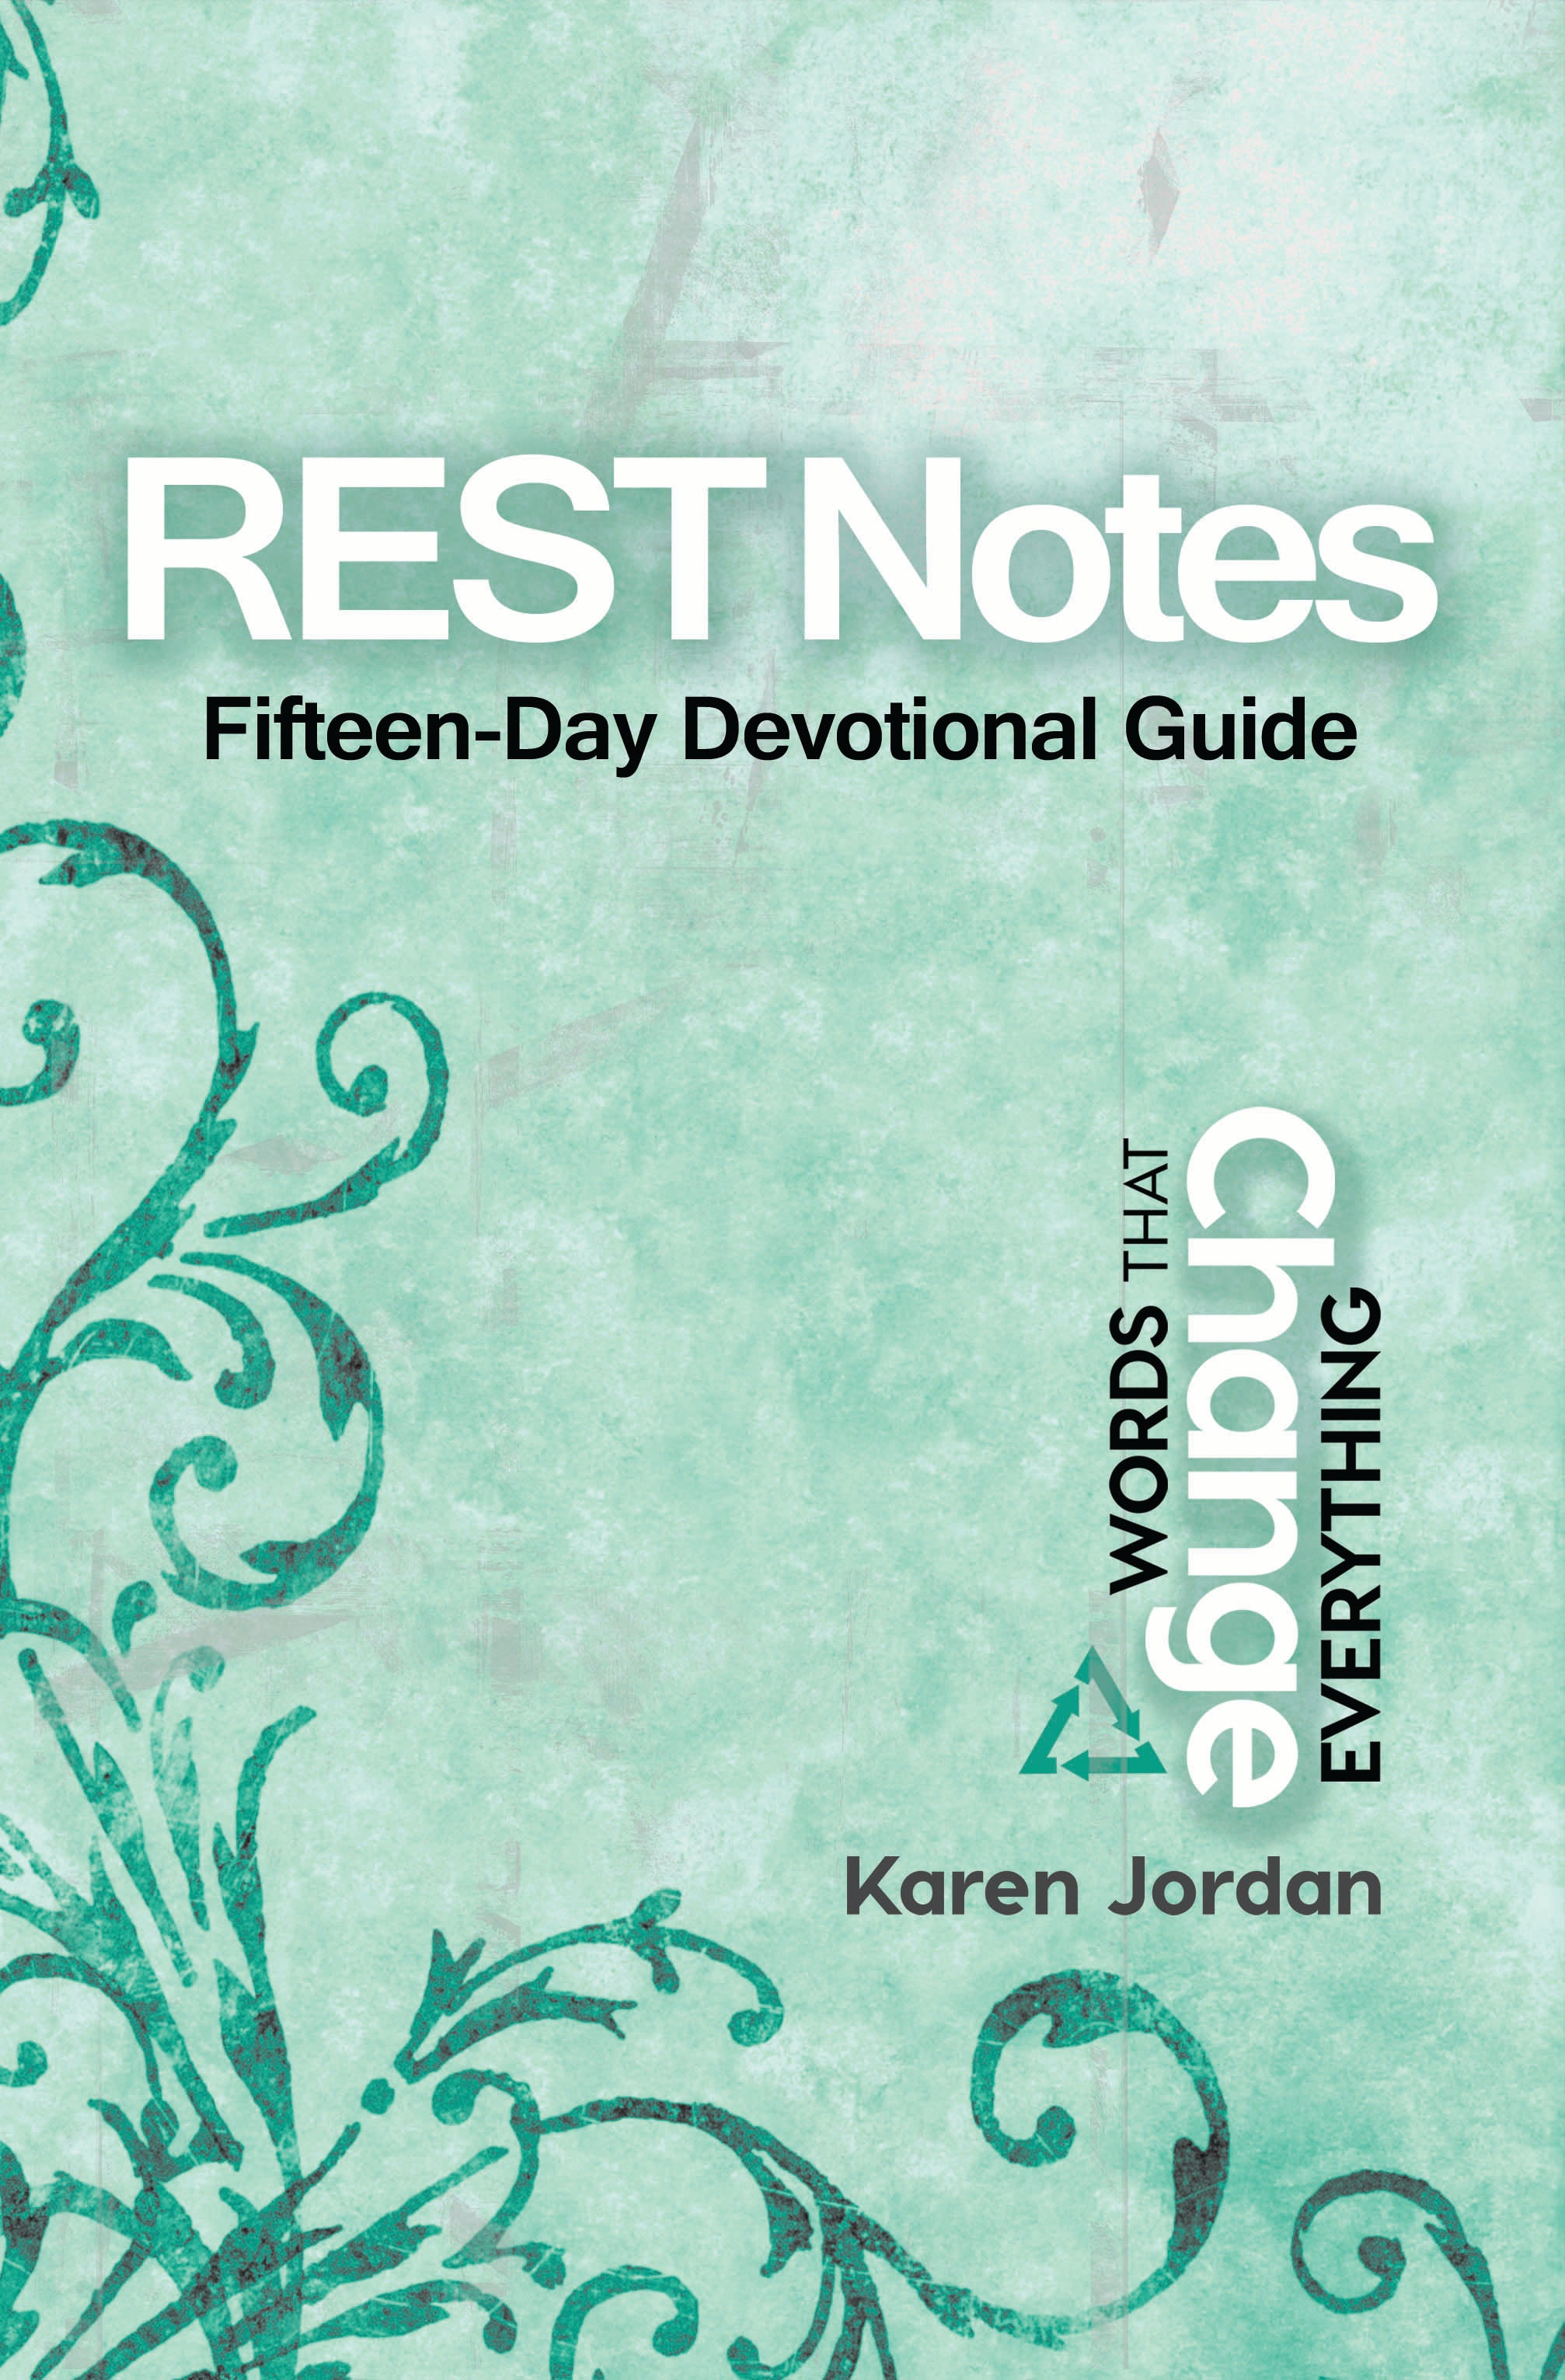 Get a free copy of Karen's 15-Day Devotional eBook